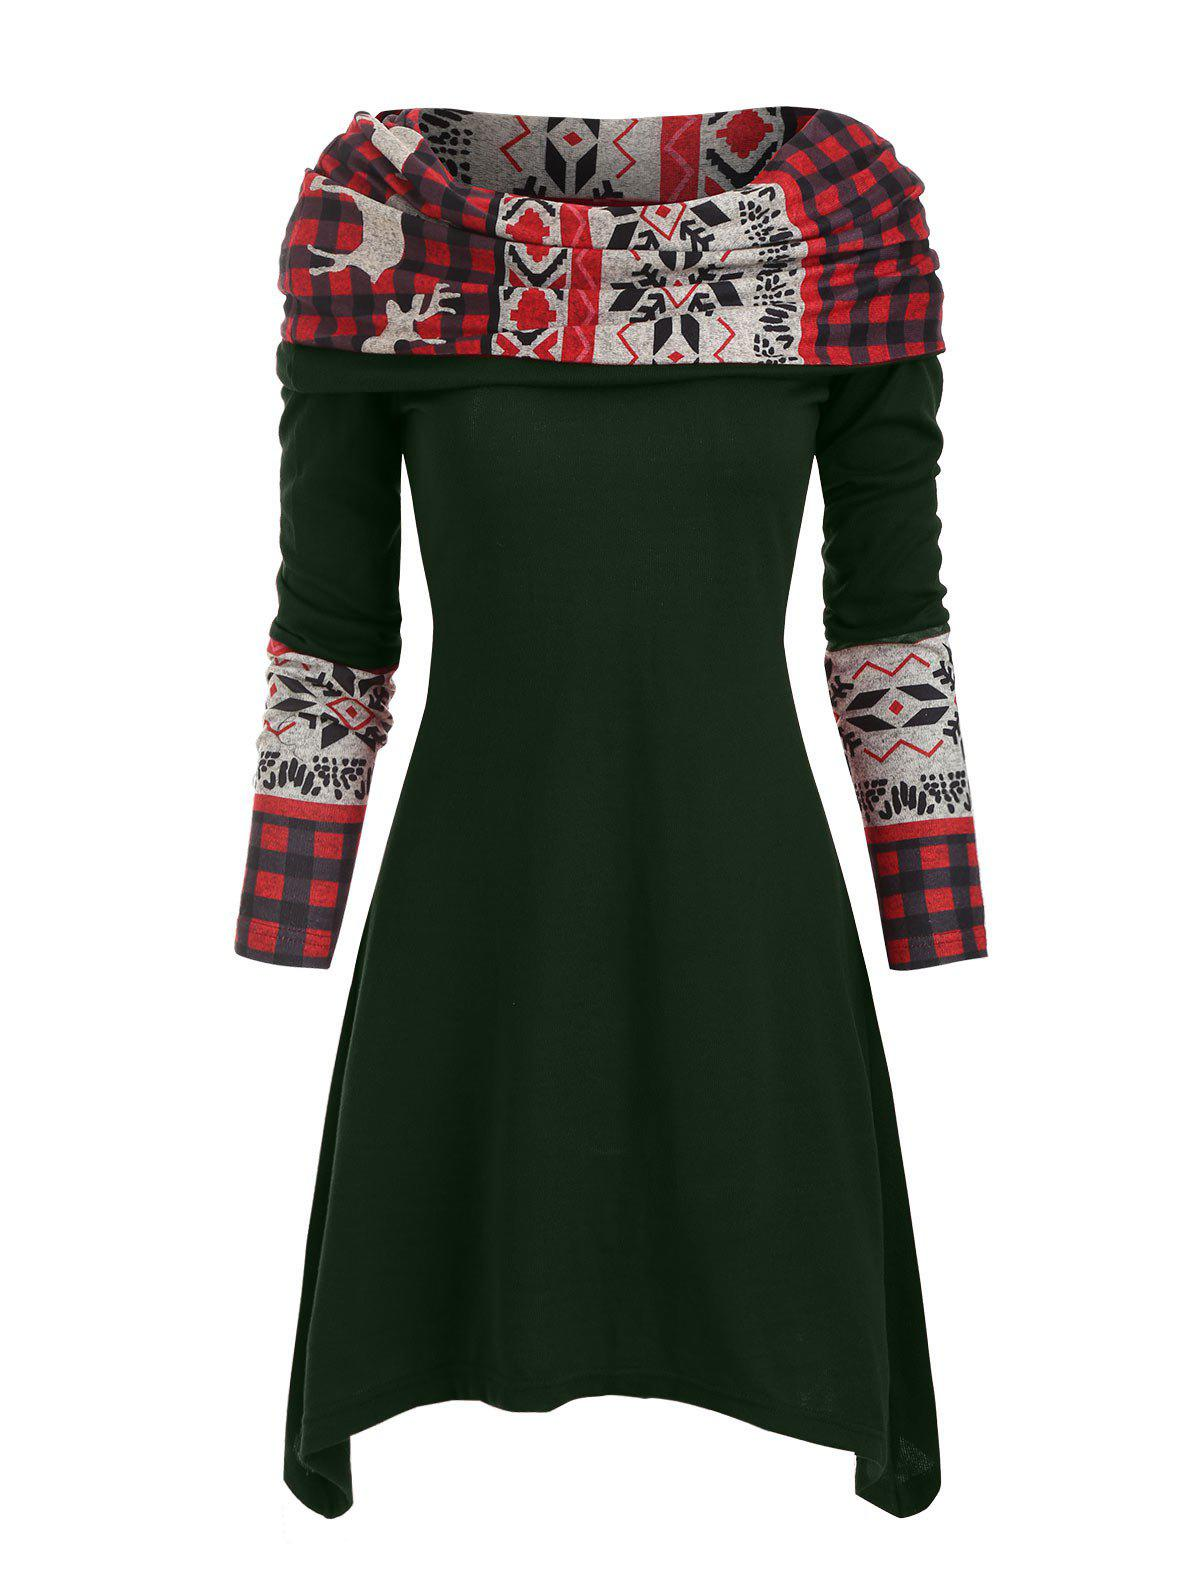 Elk Plaid Knitted Multiway Asymmetrical Dress - DARK GREEN S